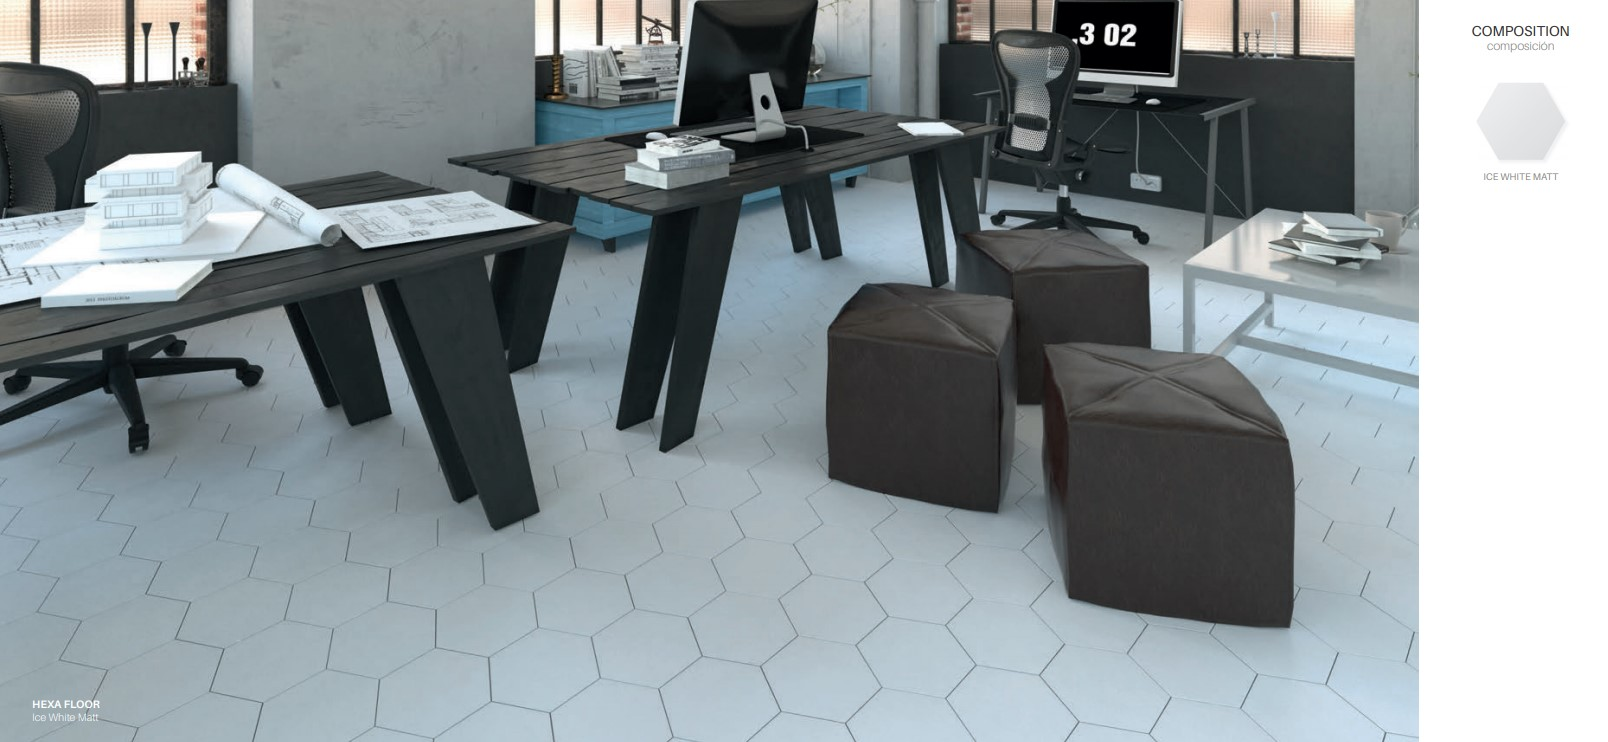 Floor Tiles Ice White Matte Hex